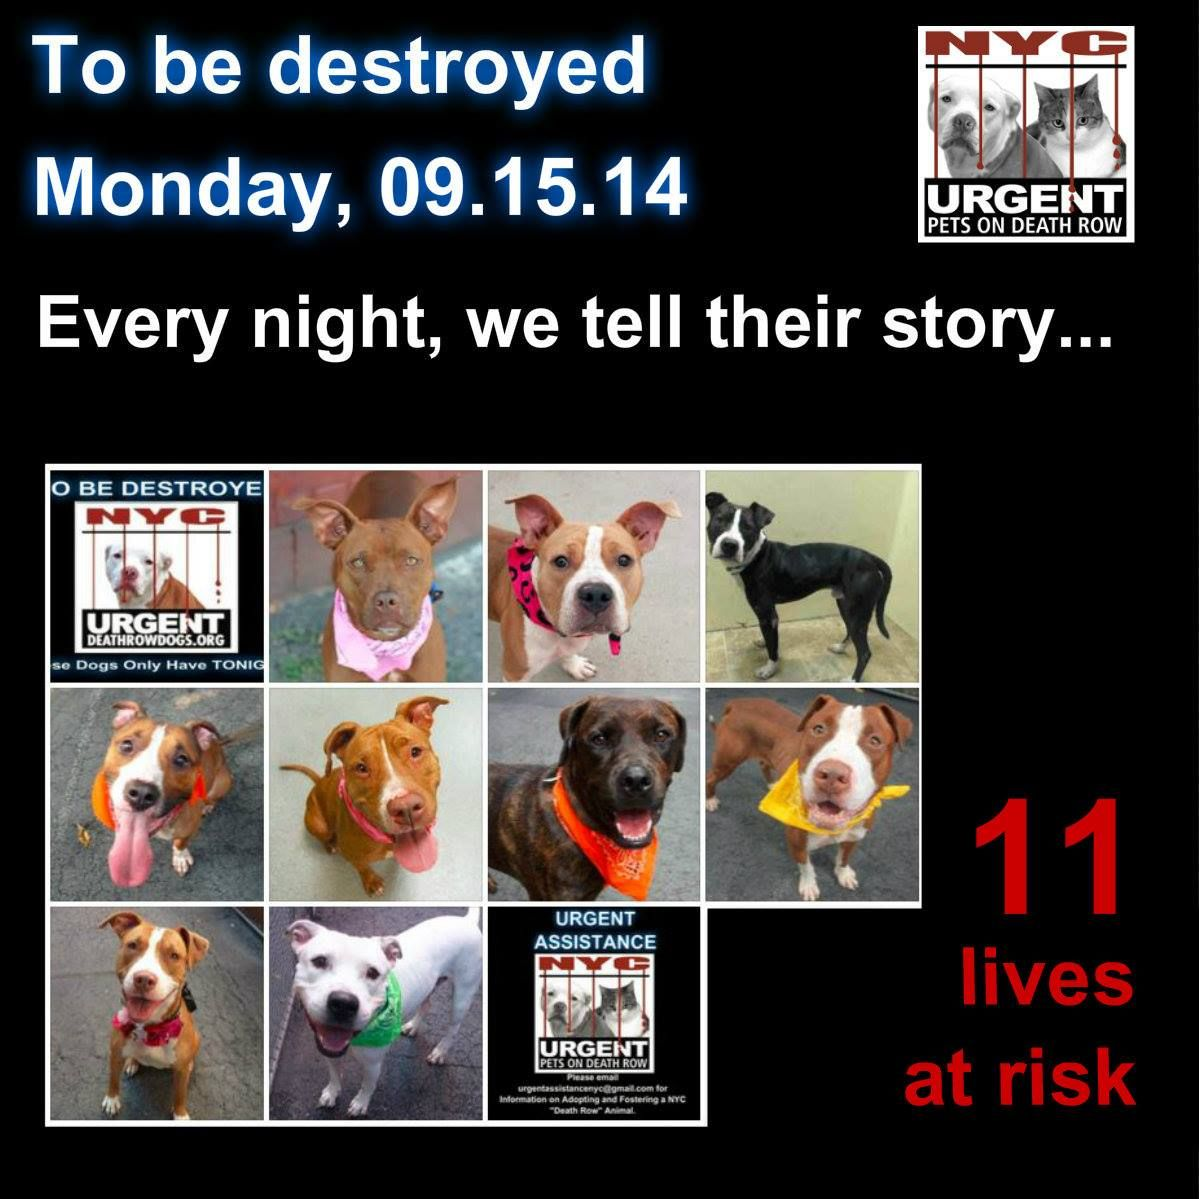 TO BE DESTROYED: 9 Dogs to be euthanized by NYC ACC- MON. 9/15/14. This is a HIGH KILL shelter group. YOU may be the only hope for these pups! ****PLEASE SHARE EVERYWHERE!!To rescue a Death Row Dog, Please read this:http://www.urgentpetsondeathrow.org/must-read/ To view the full album, please click here: https://www.facebook.com/media/set/?set=a.611290788883804.1073741851.152876678058553&type=3